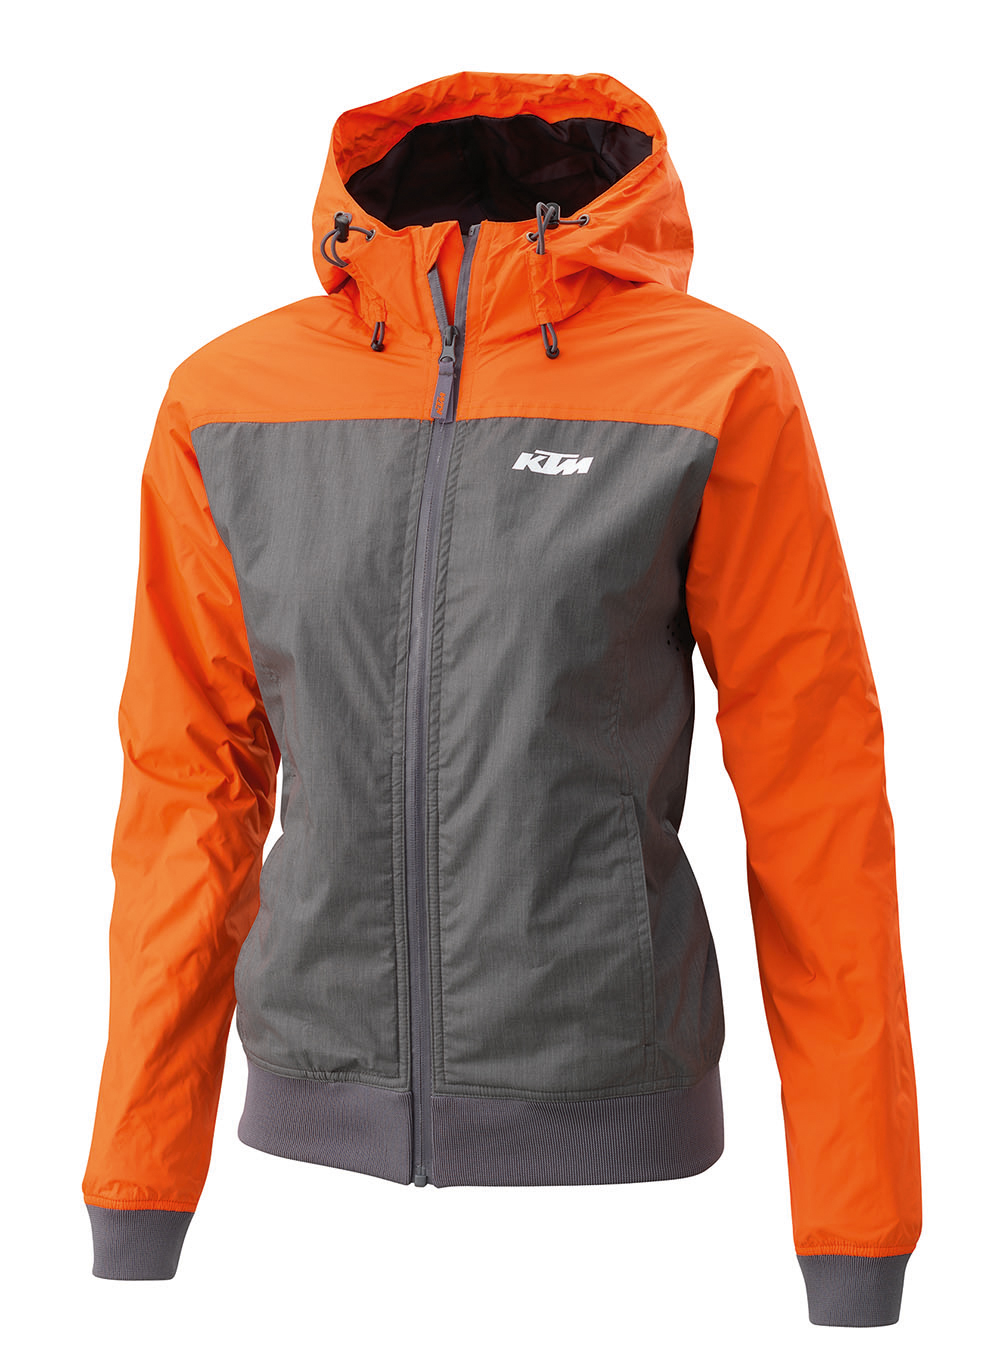 My Size Check Out The Deal On 2016 Ktm Girls Frontier Jacket Xs At Aomc Mx Biking Outfit Jackets Ktm